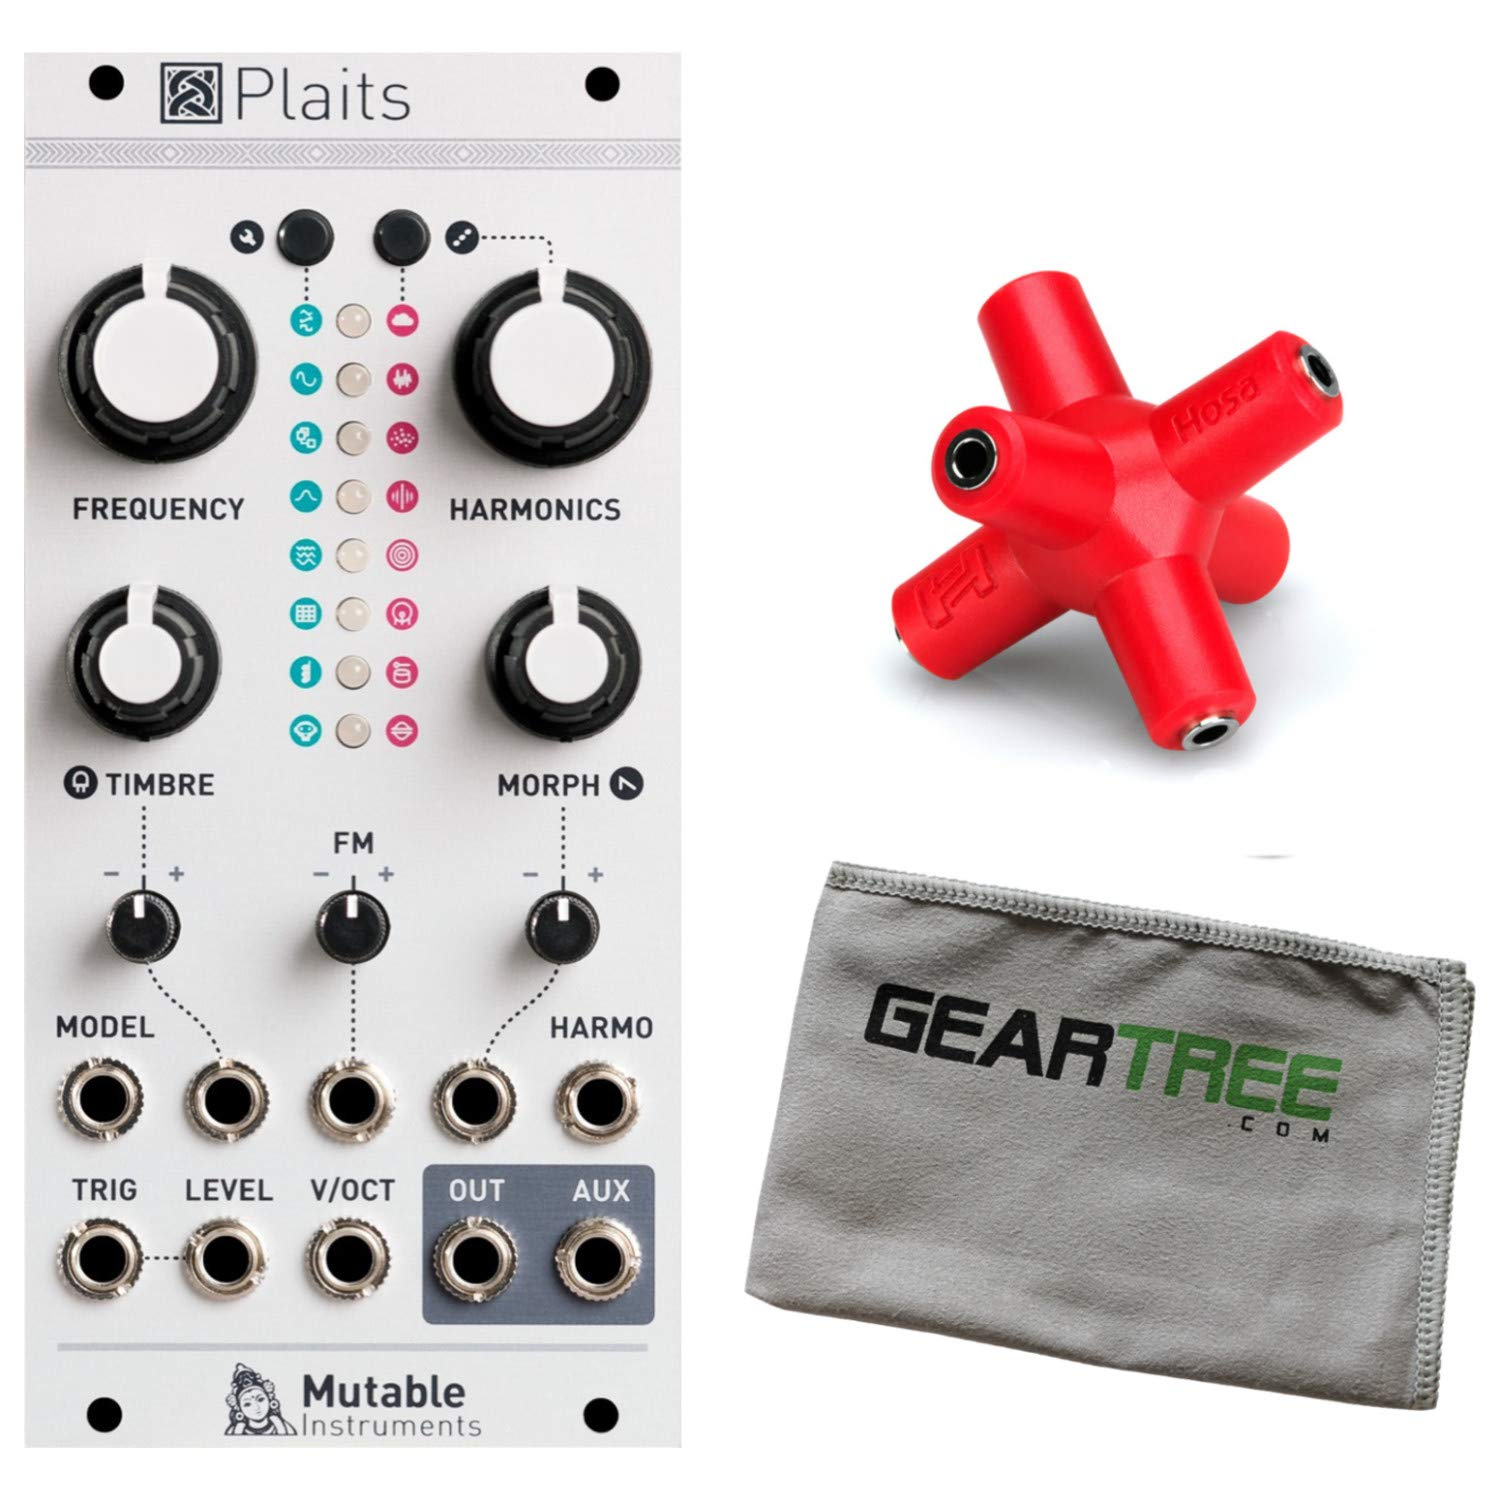 Mutable Instruments Plaits Percussion Synth Module w/Splitter and Cloth by Mutable Instruments